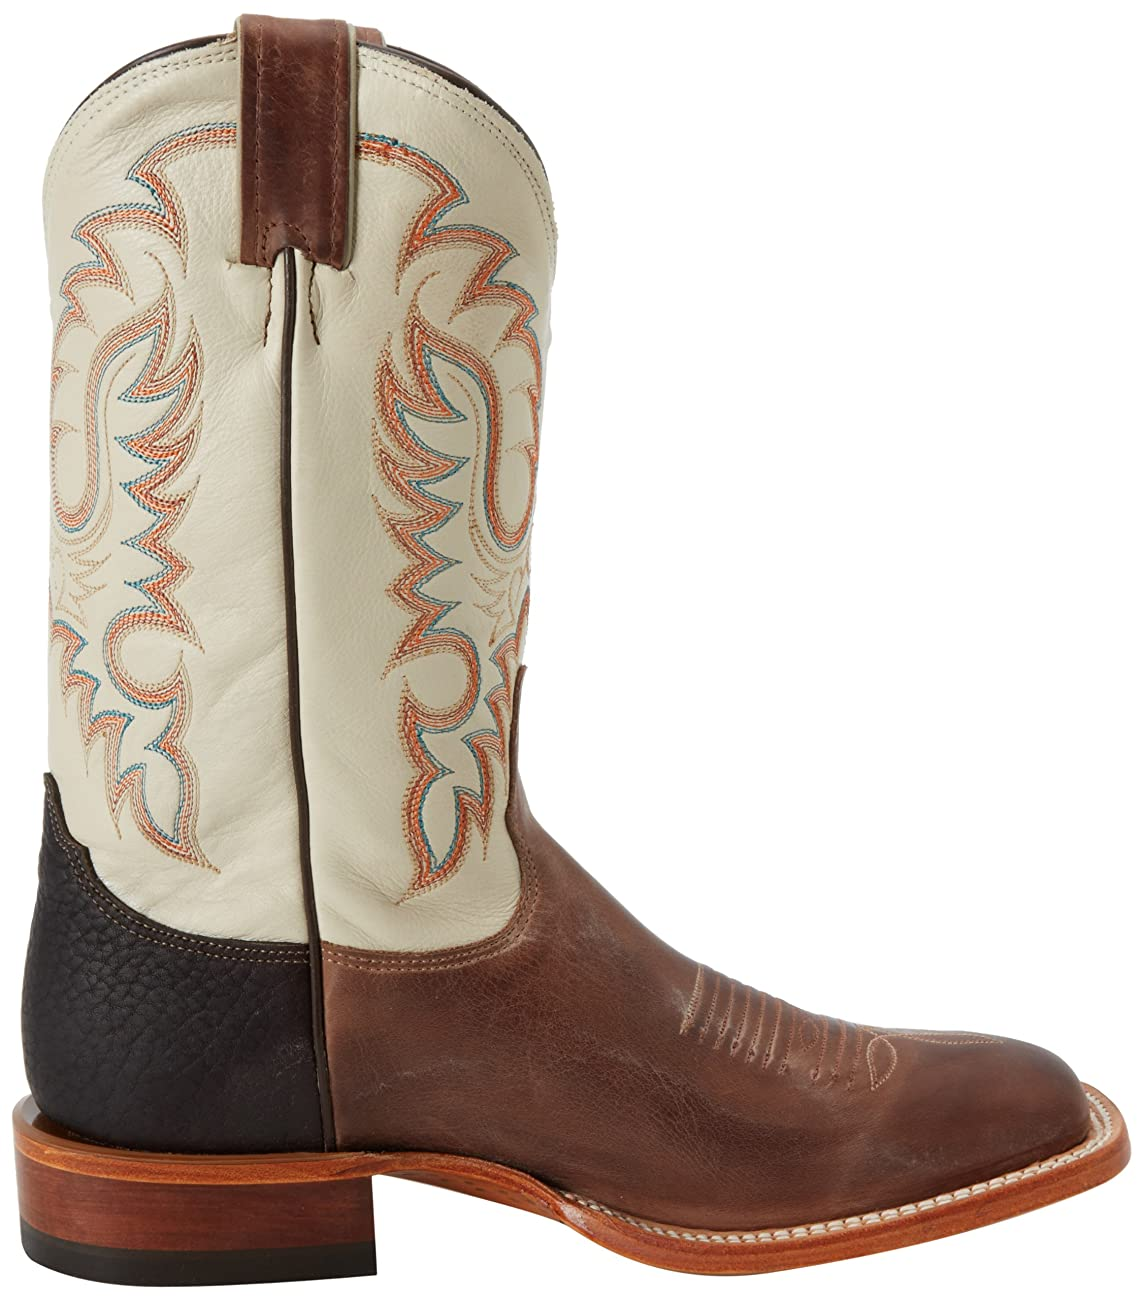 Nocona Boots Men's MD2735 11 Inch Boot 5